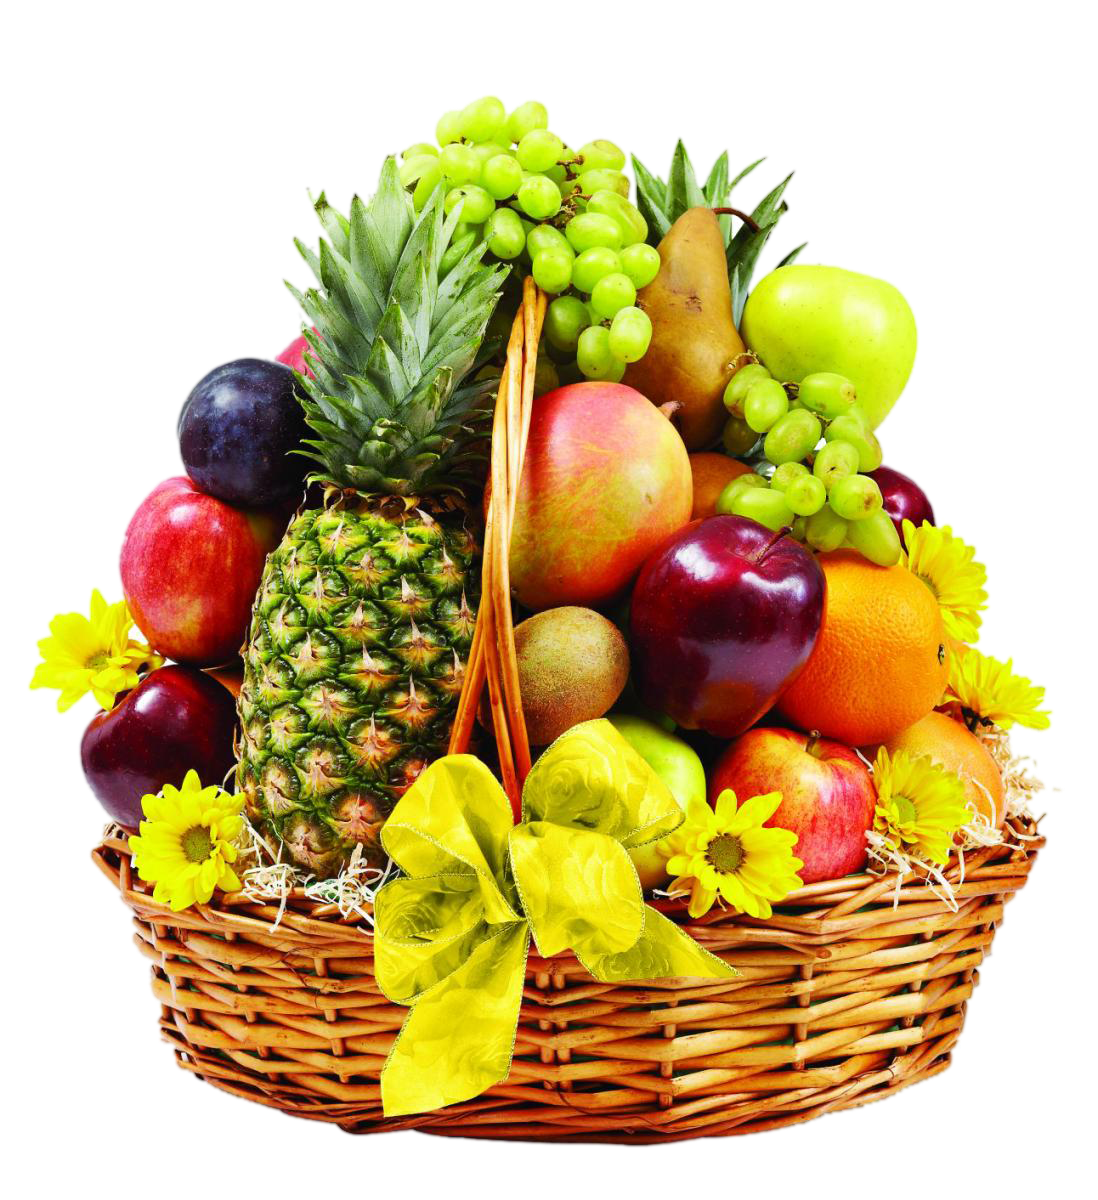 Fruit png. Mix fruits transparent background